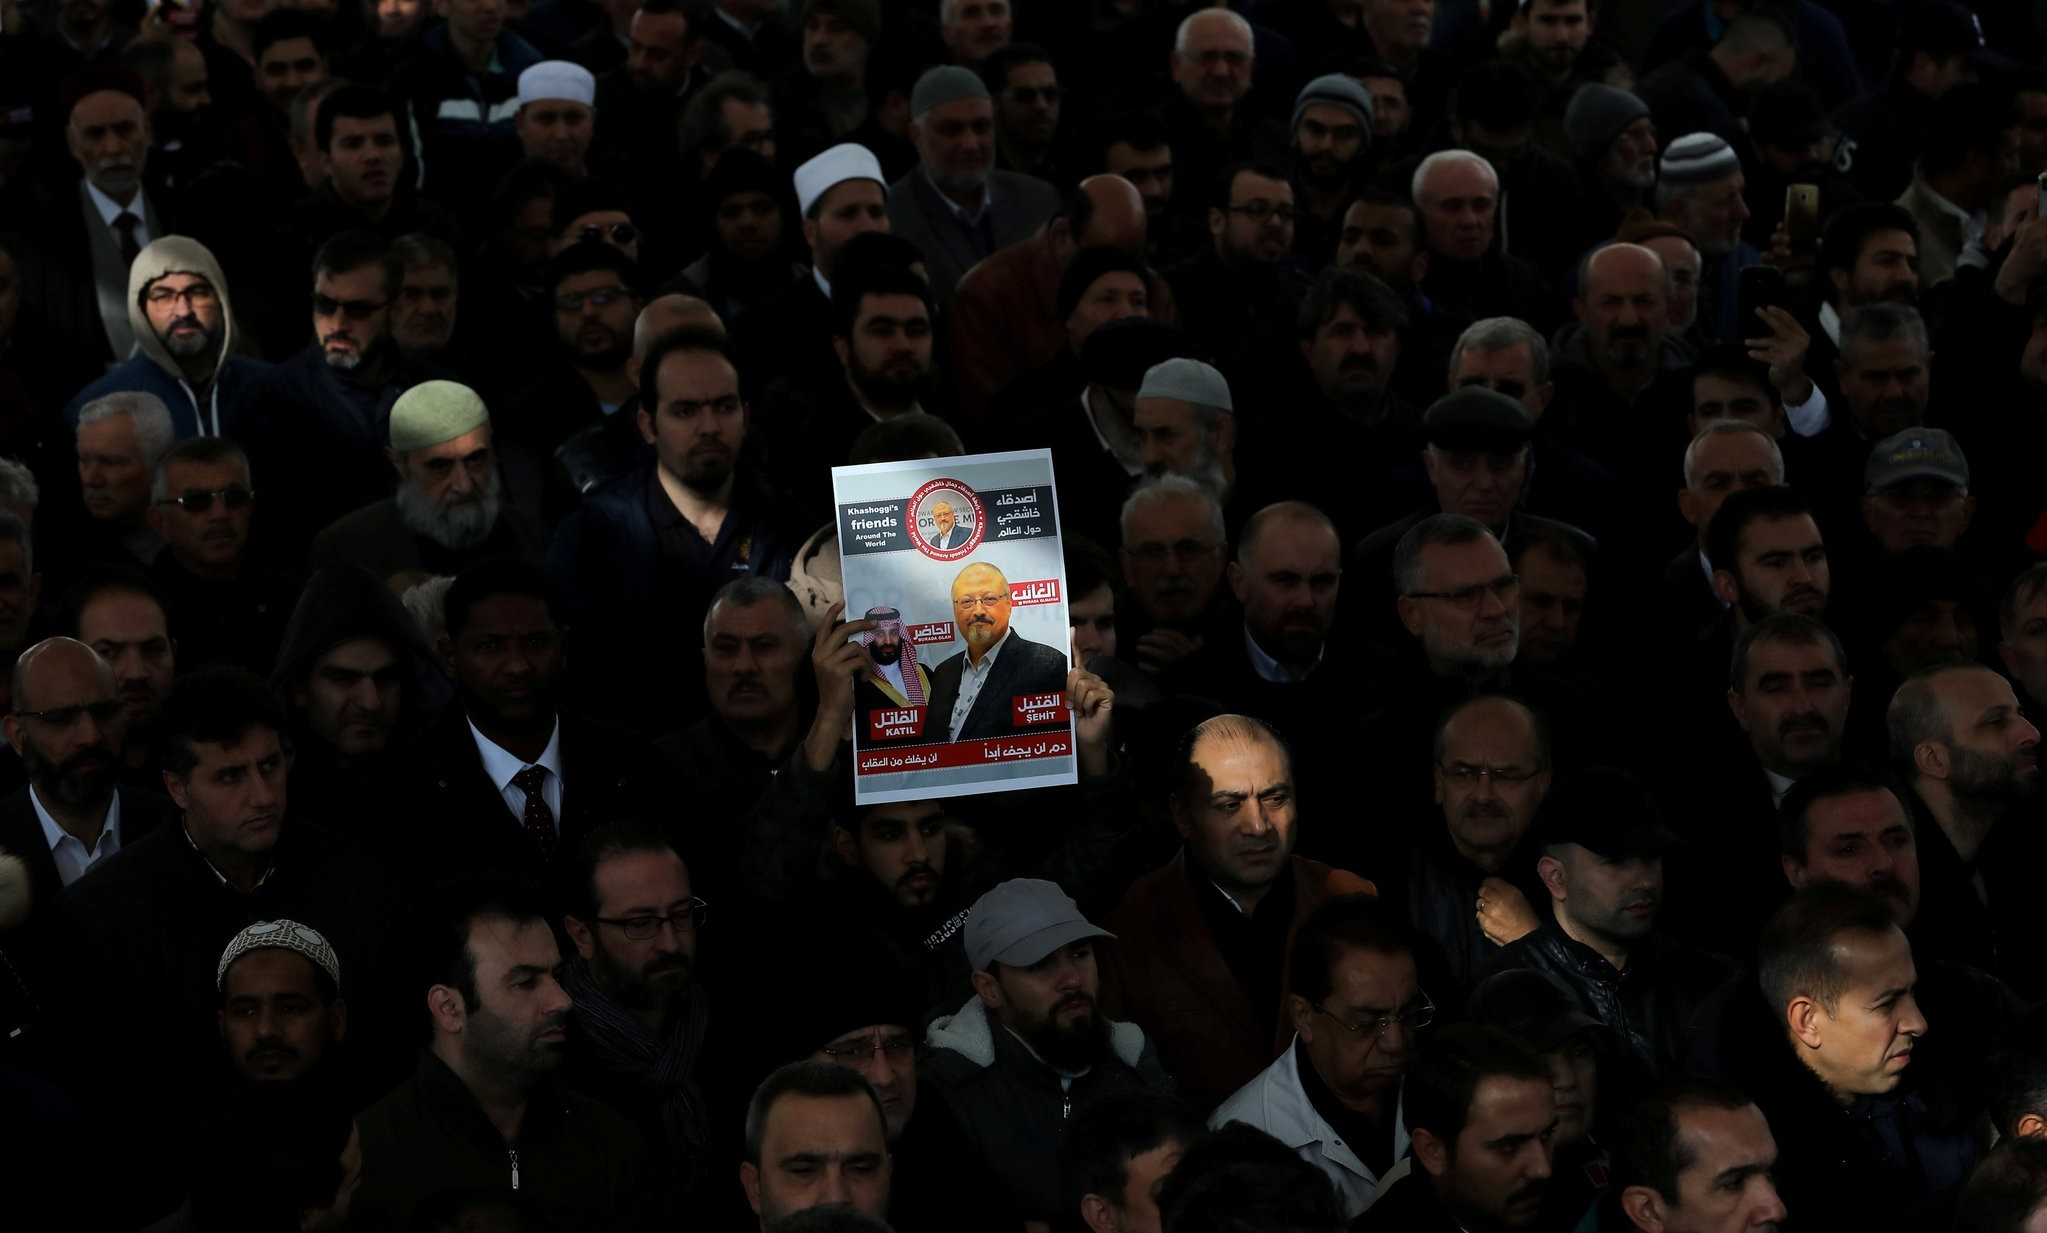 People attend a symbolic funeral prayer for slain Saudi journalist Jamal Khashoggi at the courtyard of Fatih Mosque, Istanbul, Nov. 16, 2018.